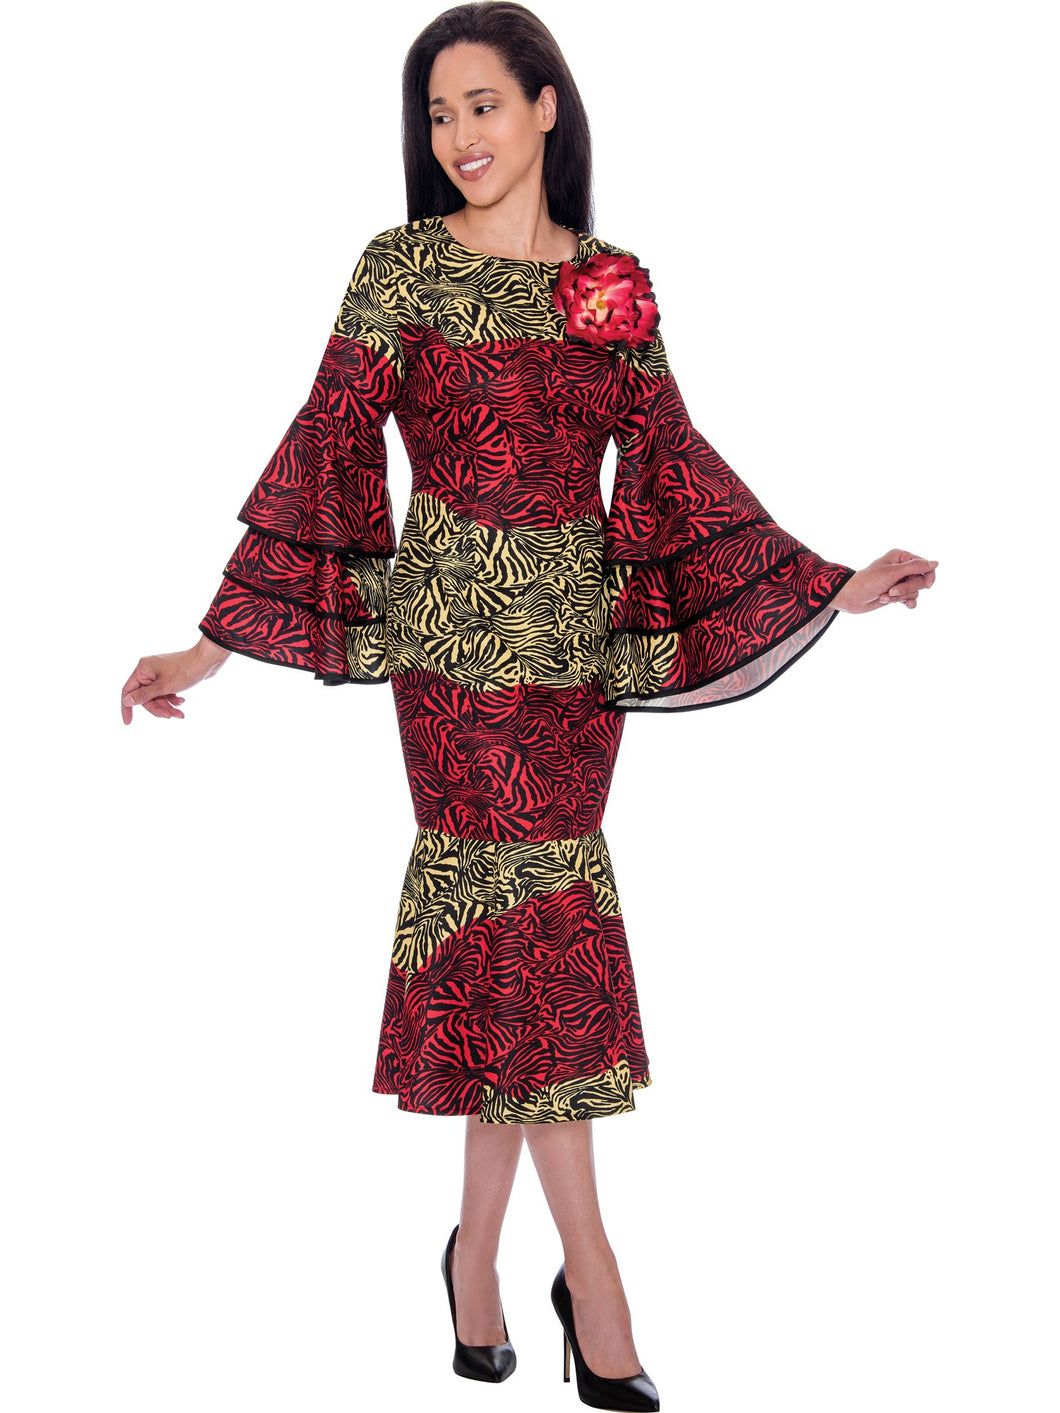 DN2711 Red Zebra Print Church or Special Occasion Dress, Dresses By Nubiano